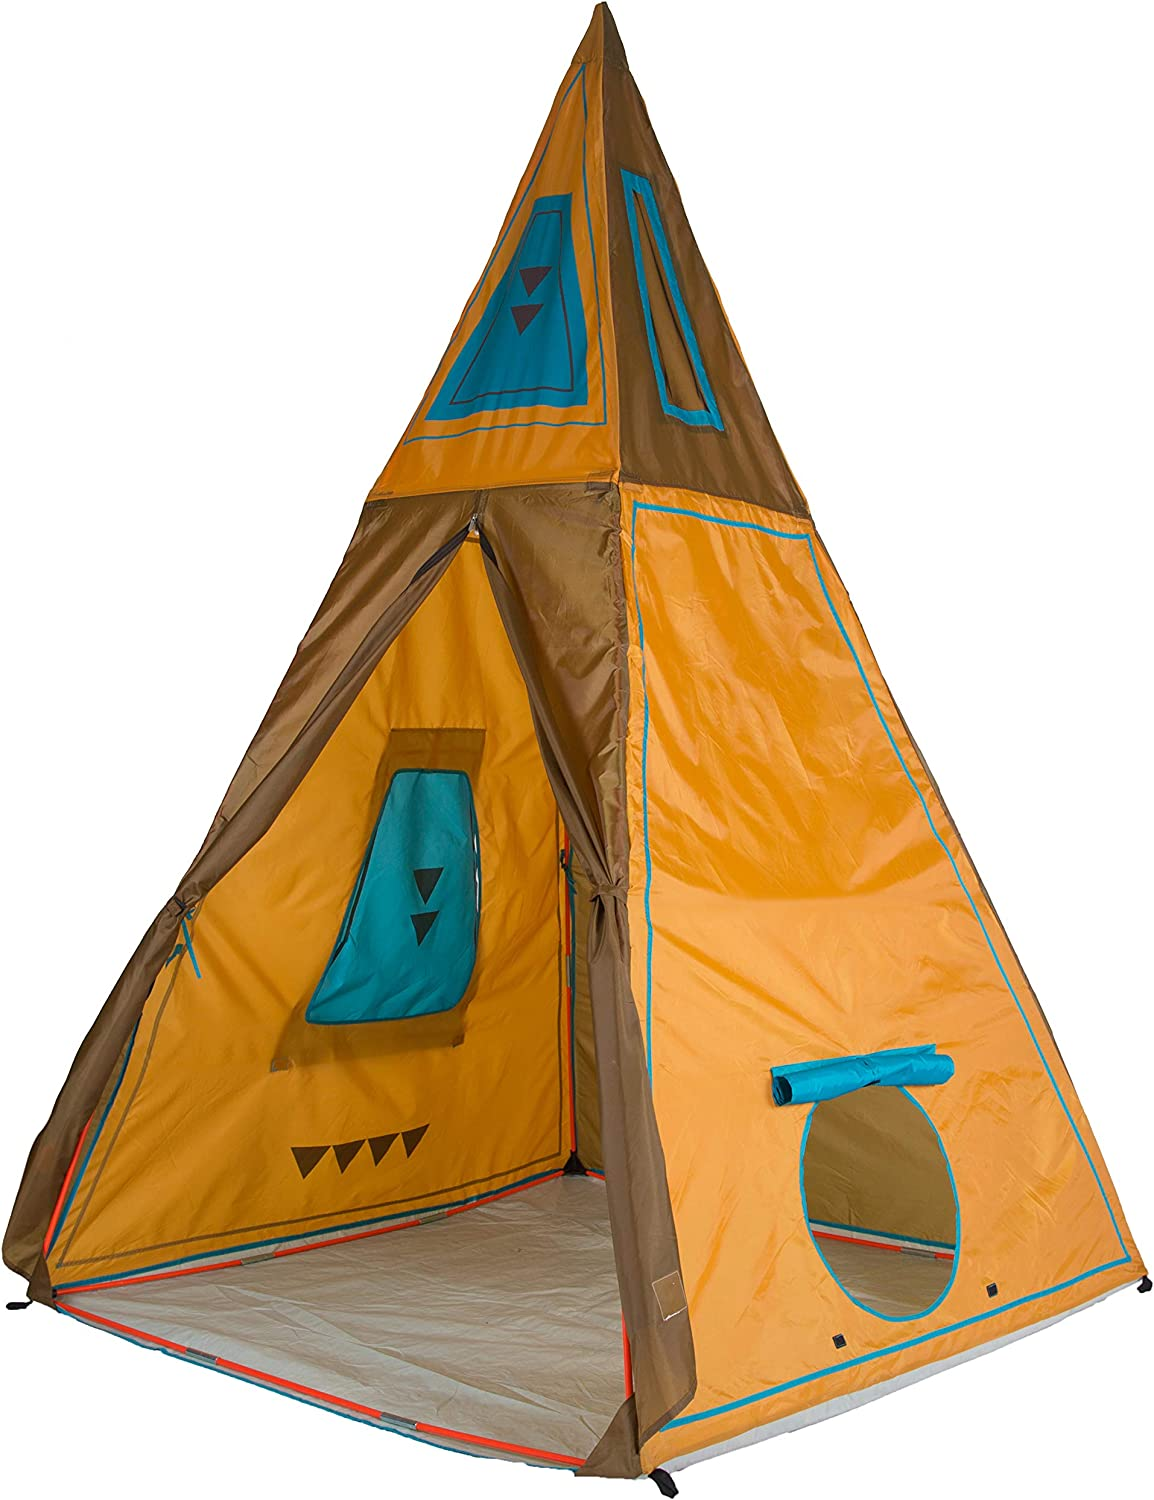 OFFicial shop Finally resale start Pacific Play Tents 30610 Kids Giant Pee Playhouse 59